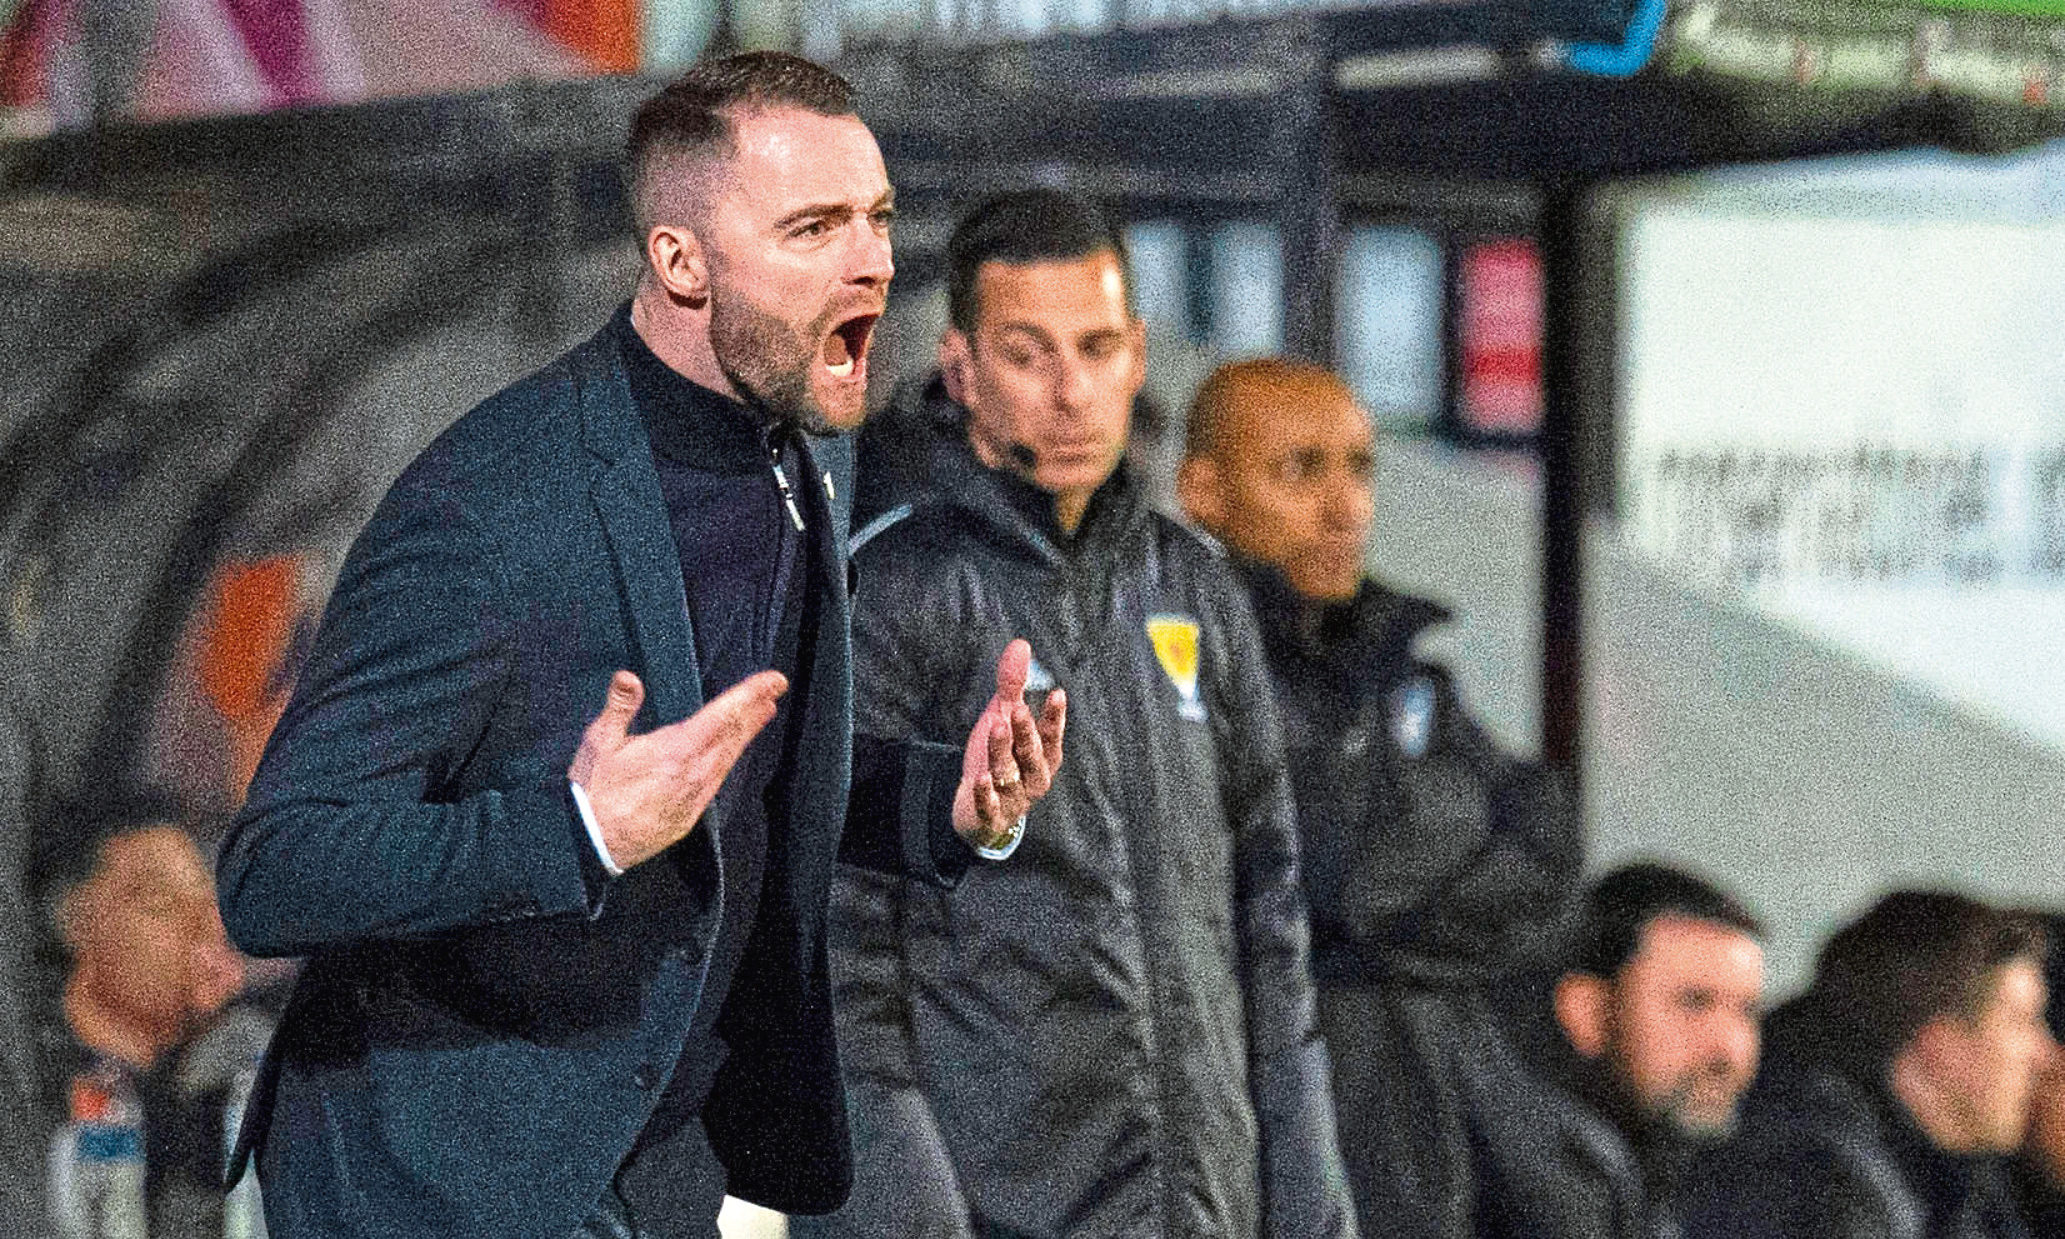 Dundee manager James McPake screams instructions from the bench during Dundee's loss to Dunfermline.